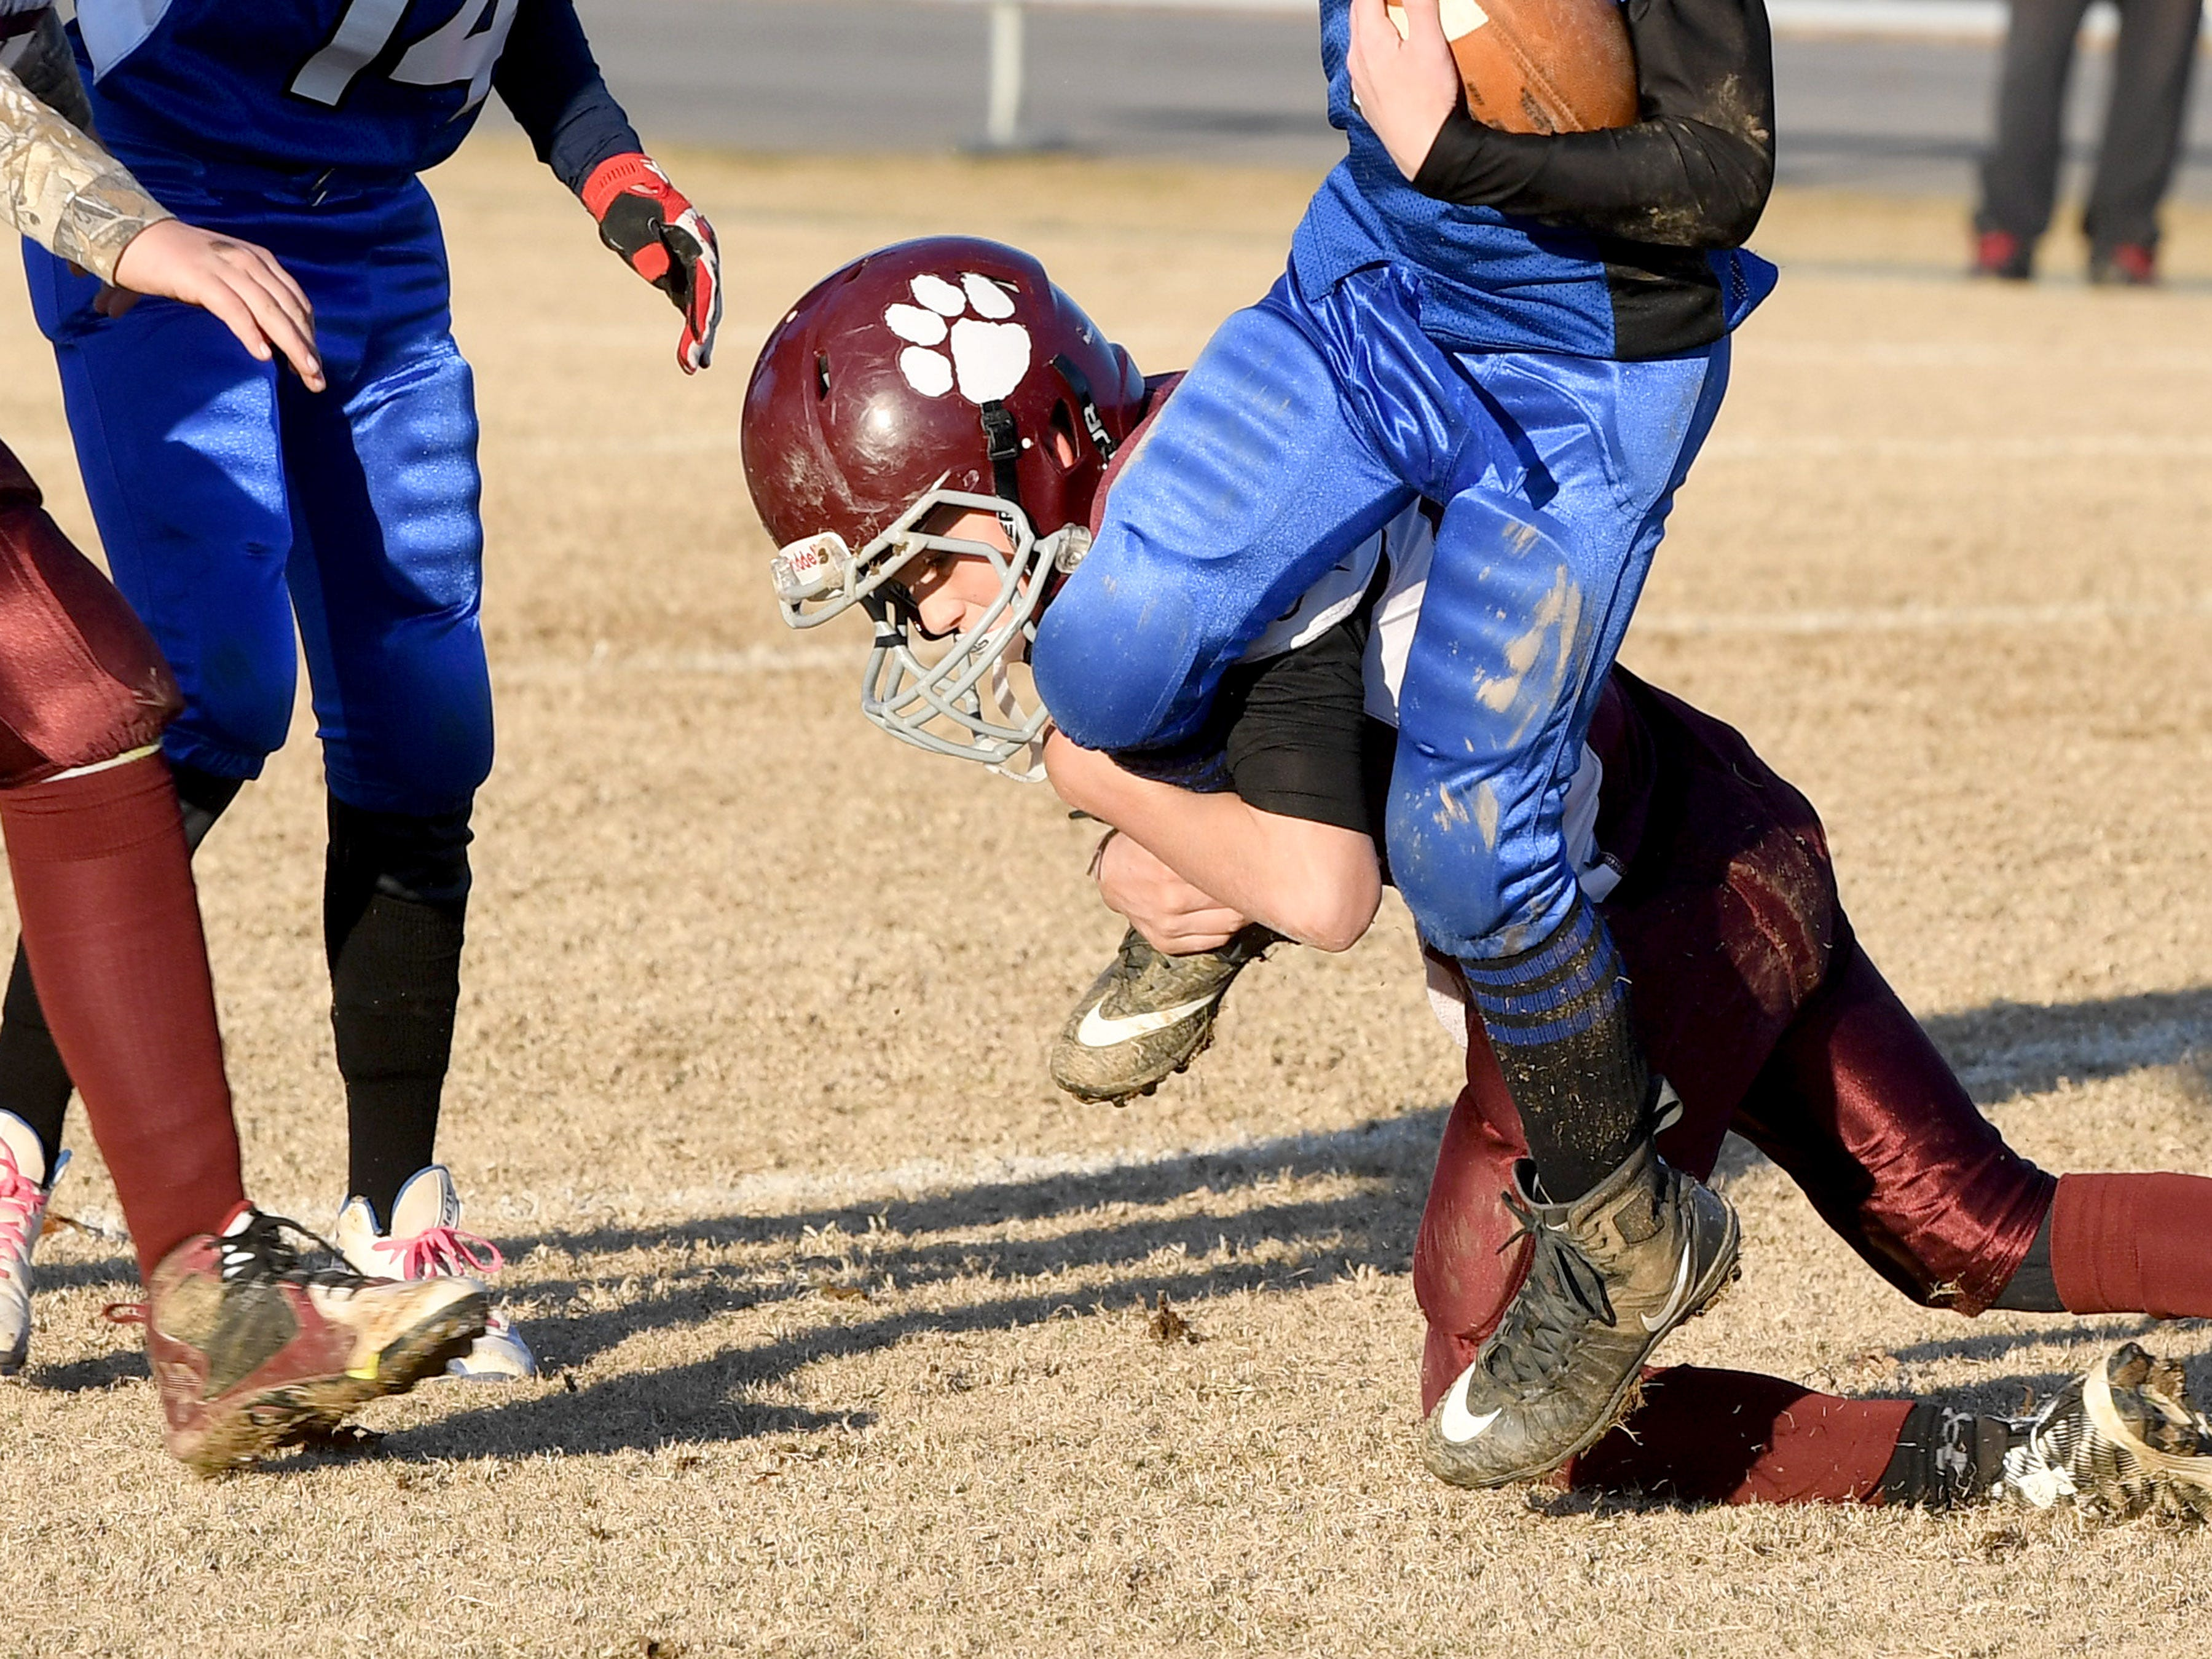 A Stuarts Draft defender grabs Fort Defiance ball carrier Bradley Hebb around the lower leg to make the stop during the Augusta County Quarterback Club Juniors Super Bowl in Fishersville on Sunday, Nov. 11, 2018. Fort Defiance beats Stuarts Draft, 13-12.